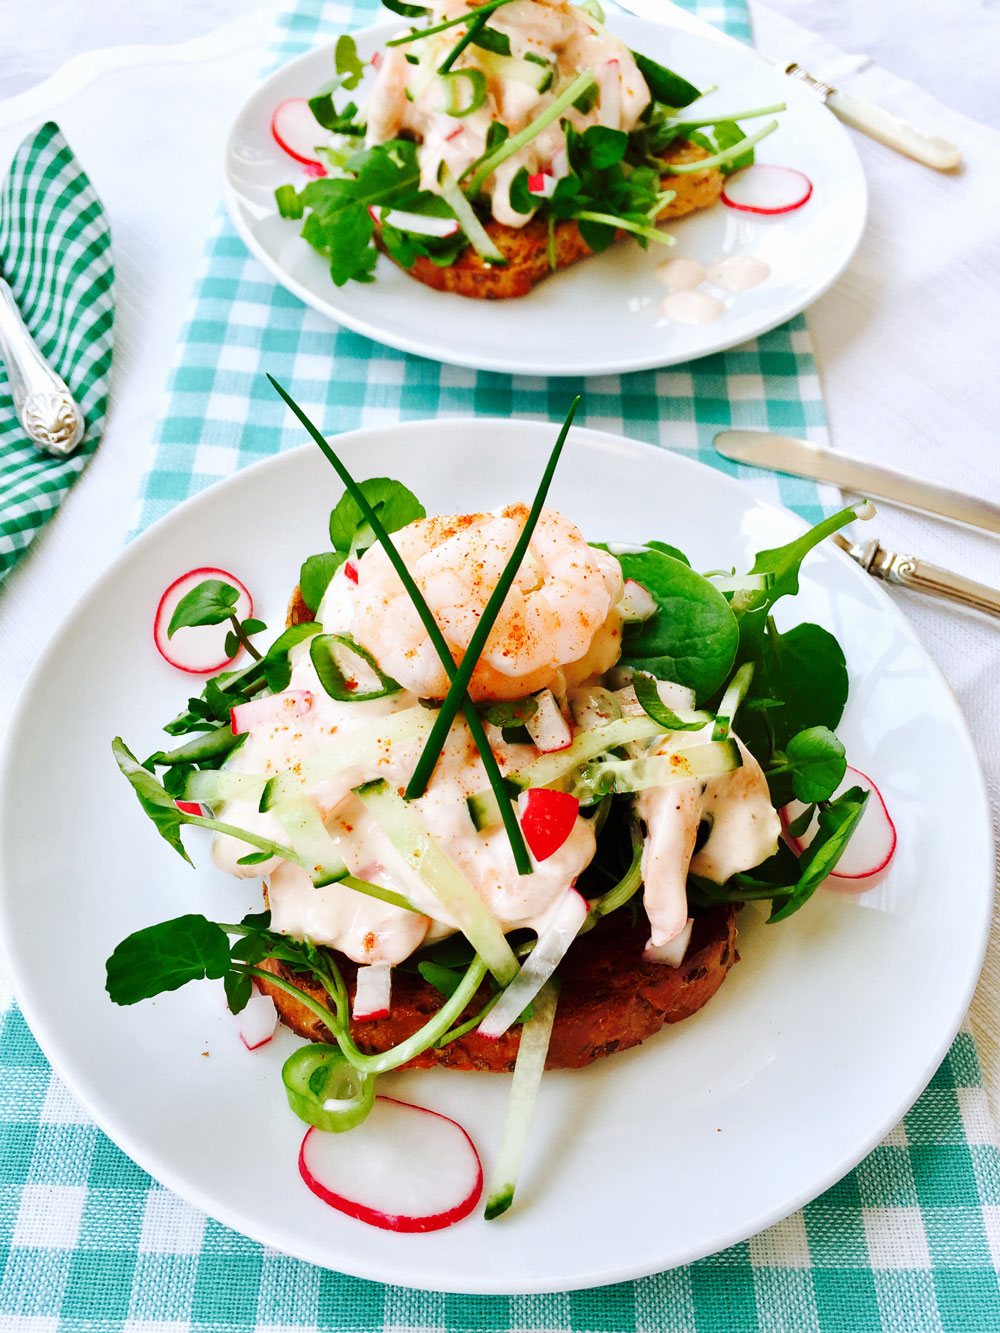 Prawn, radish and cucumber sandwich